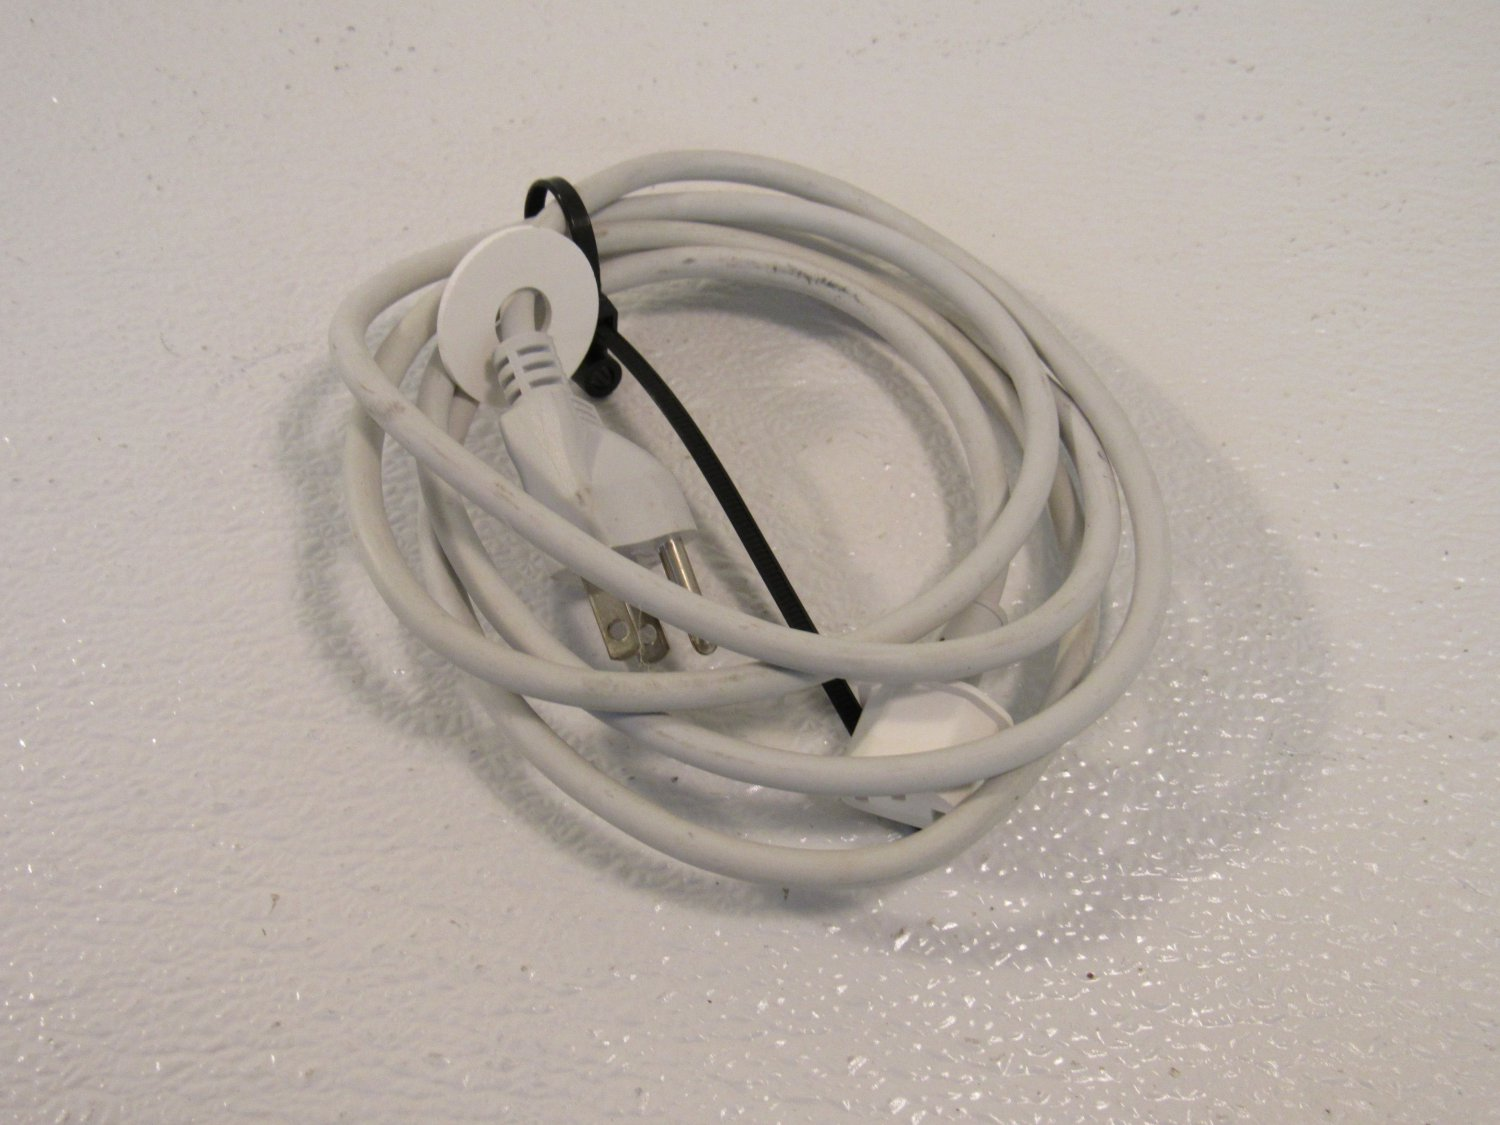 Volex Apple Power Cord 120V 6 Foot White Genuine/OEM PS204